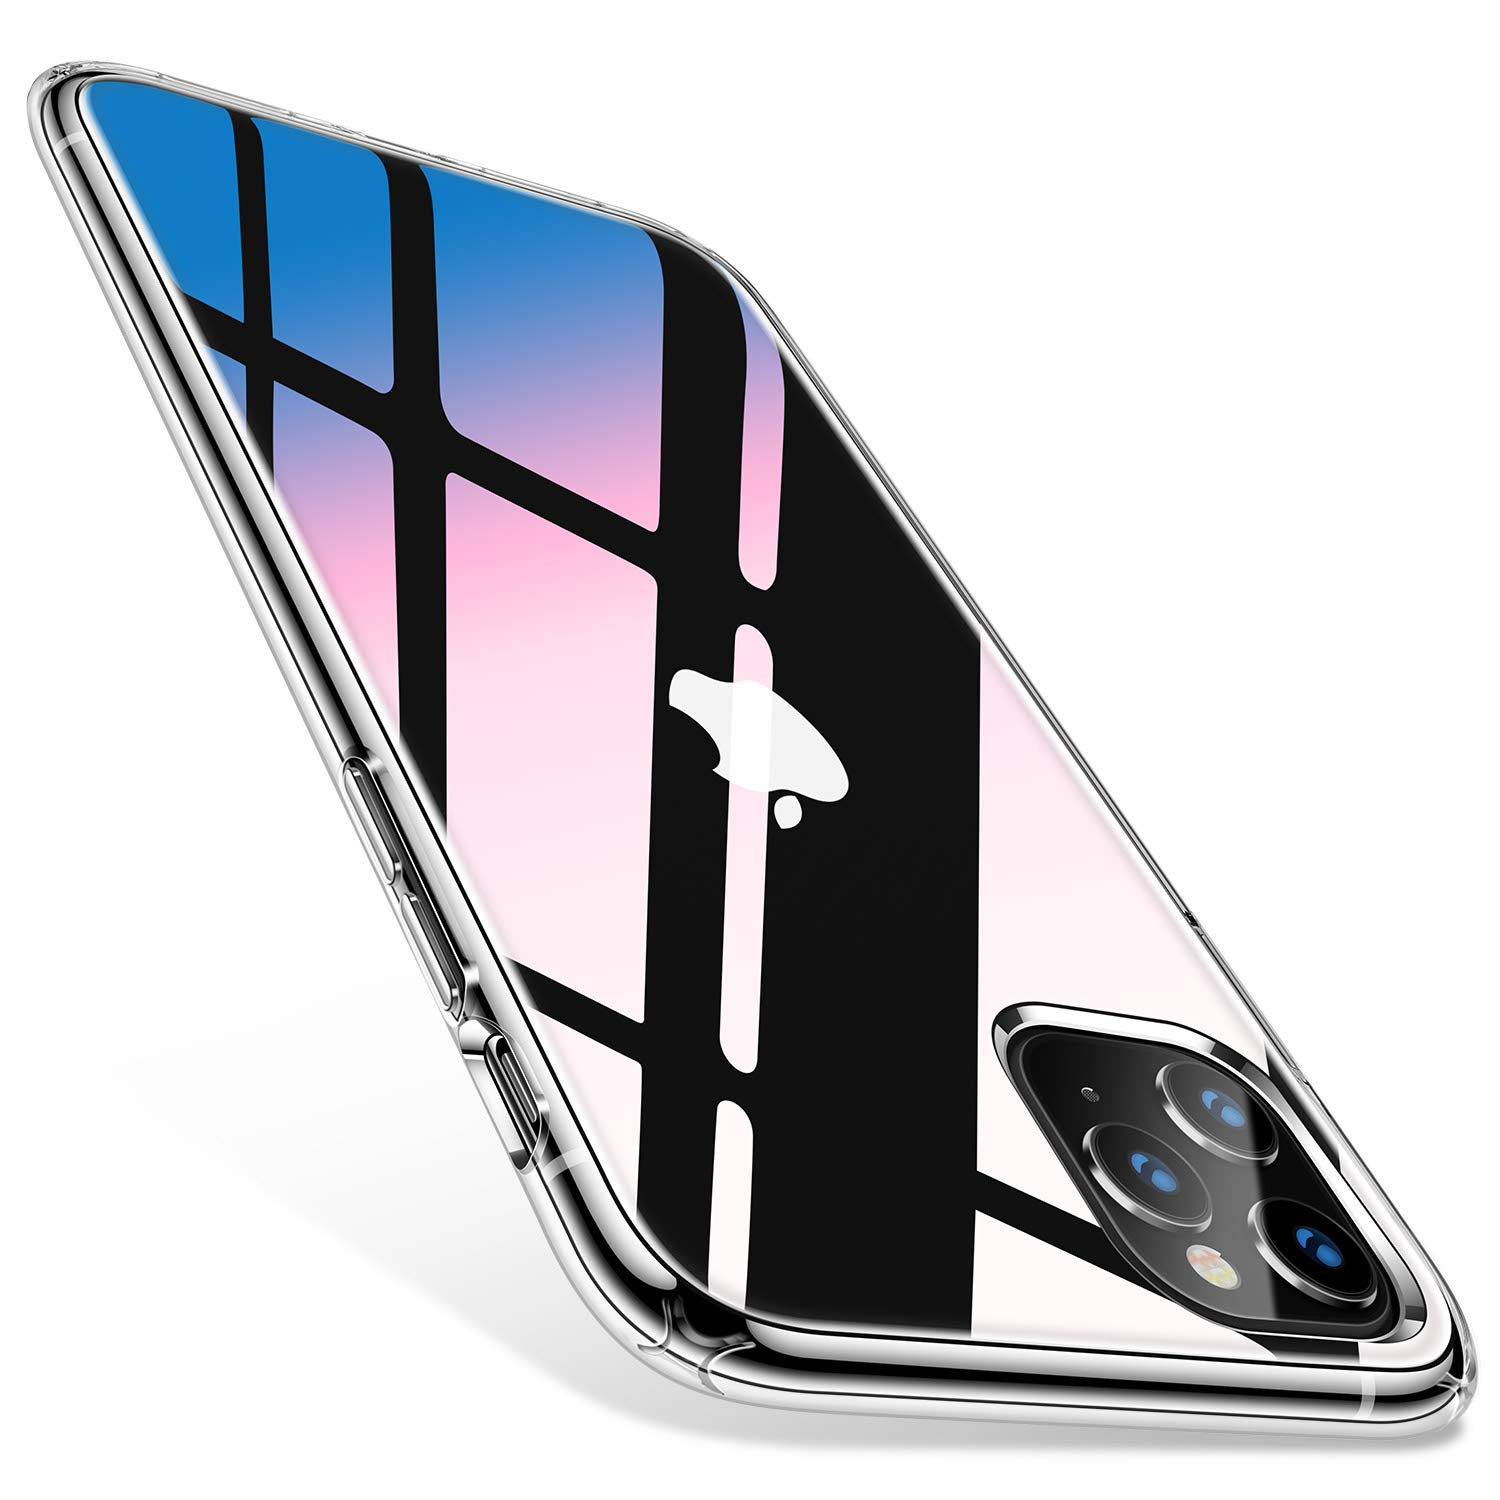 TORRAS Hybrid Clear iPhone 11 Pro Max Case, Slim Fit Hard Plastic Shockproof with X-Shock Protection Phone Case for iPhone 11 Pro Max 2019, Clear by TORRAS